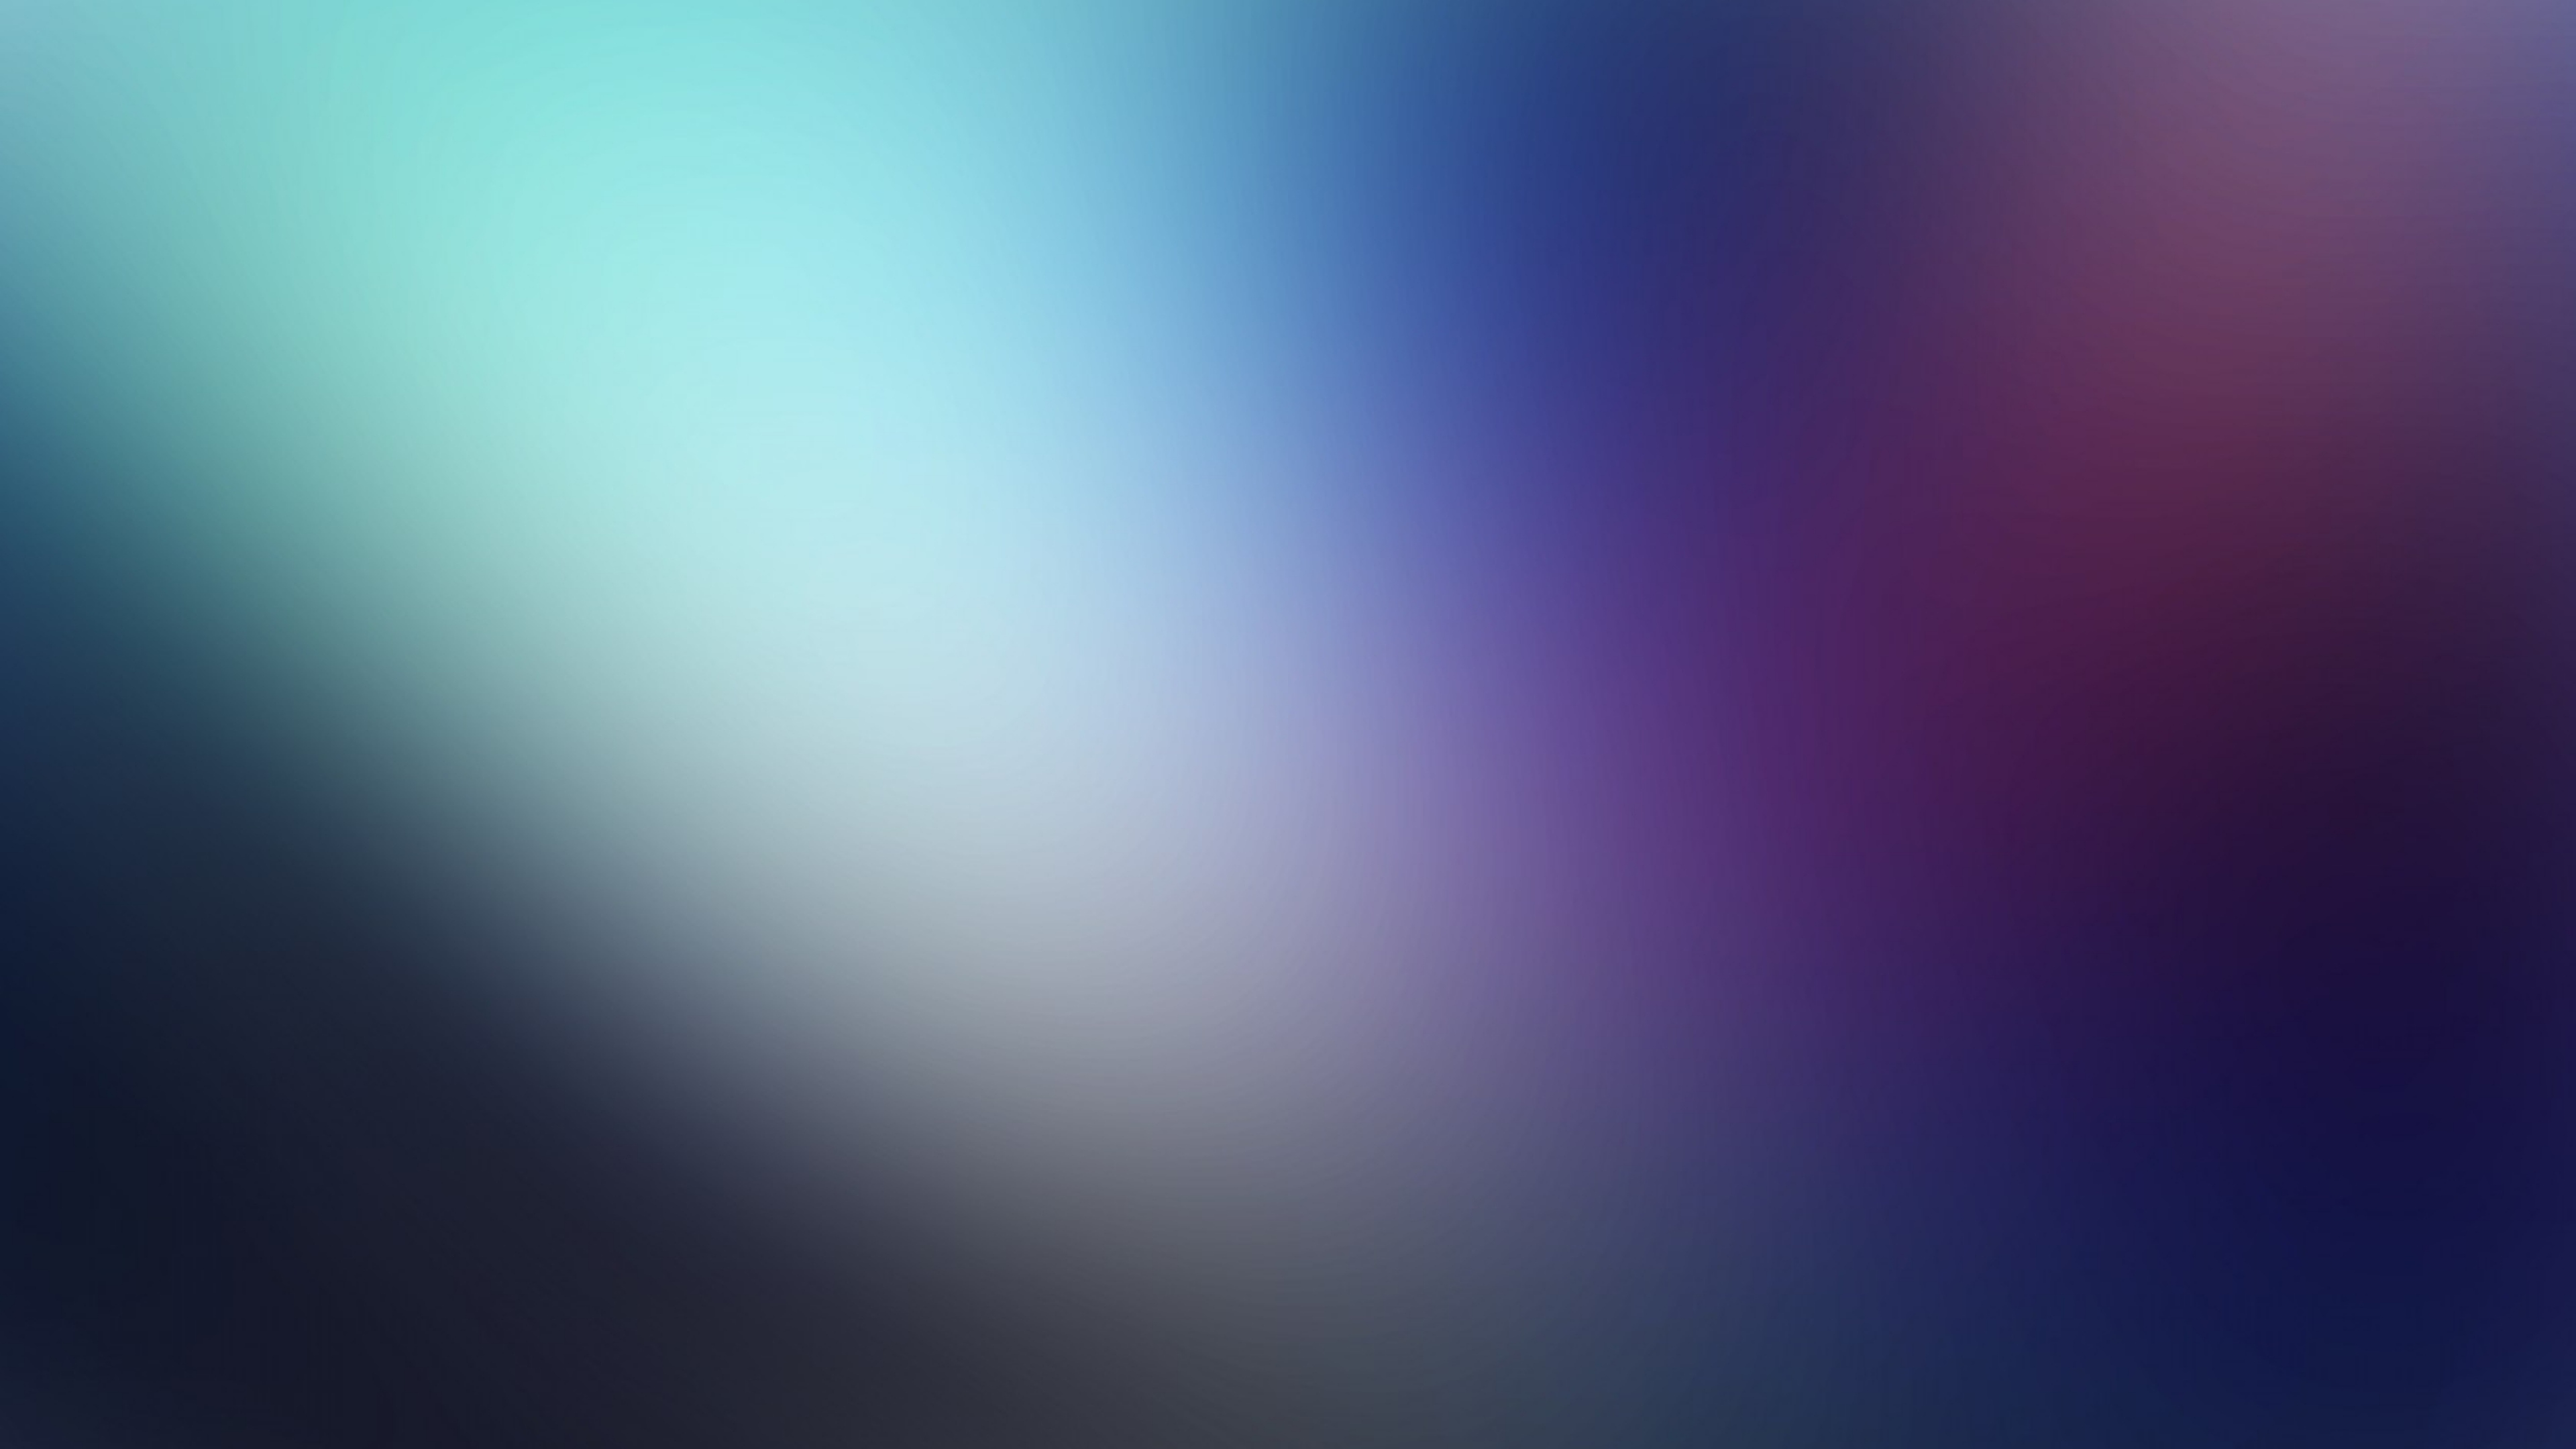 Blur 4k Abstract Wallpaper 139307 Hd Wallpaper Backgrounds Download